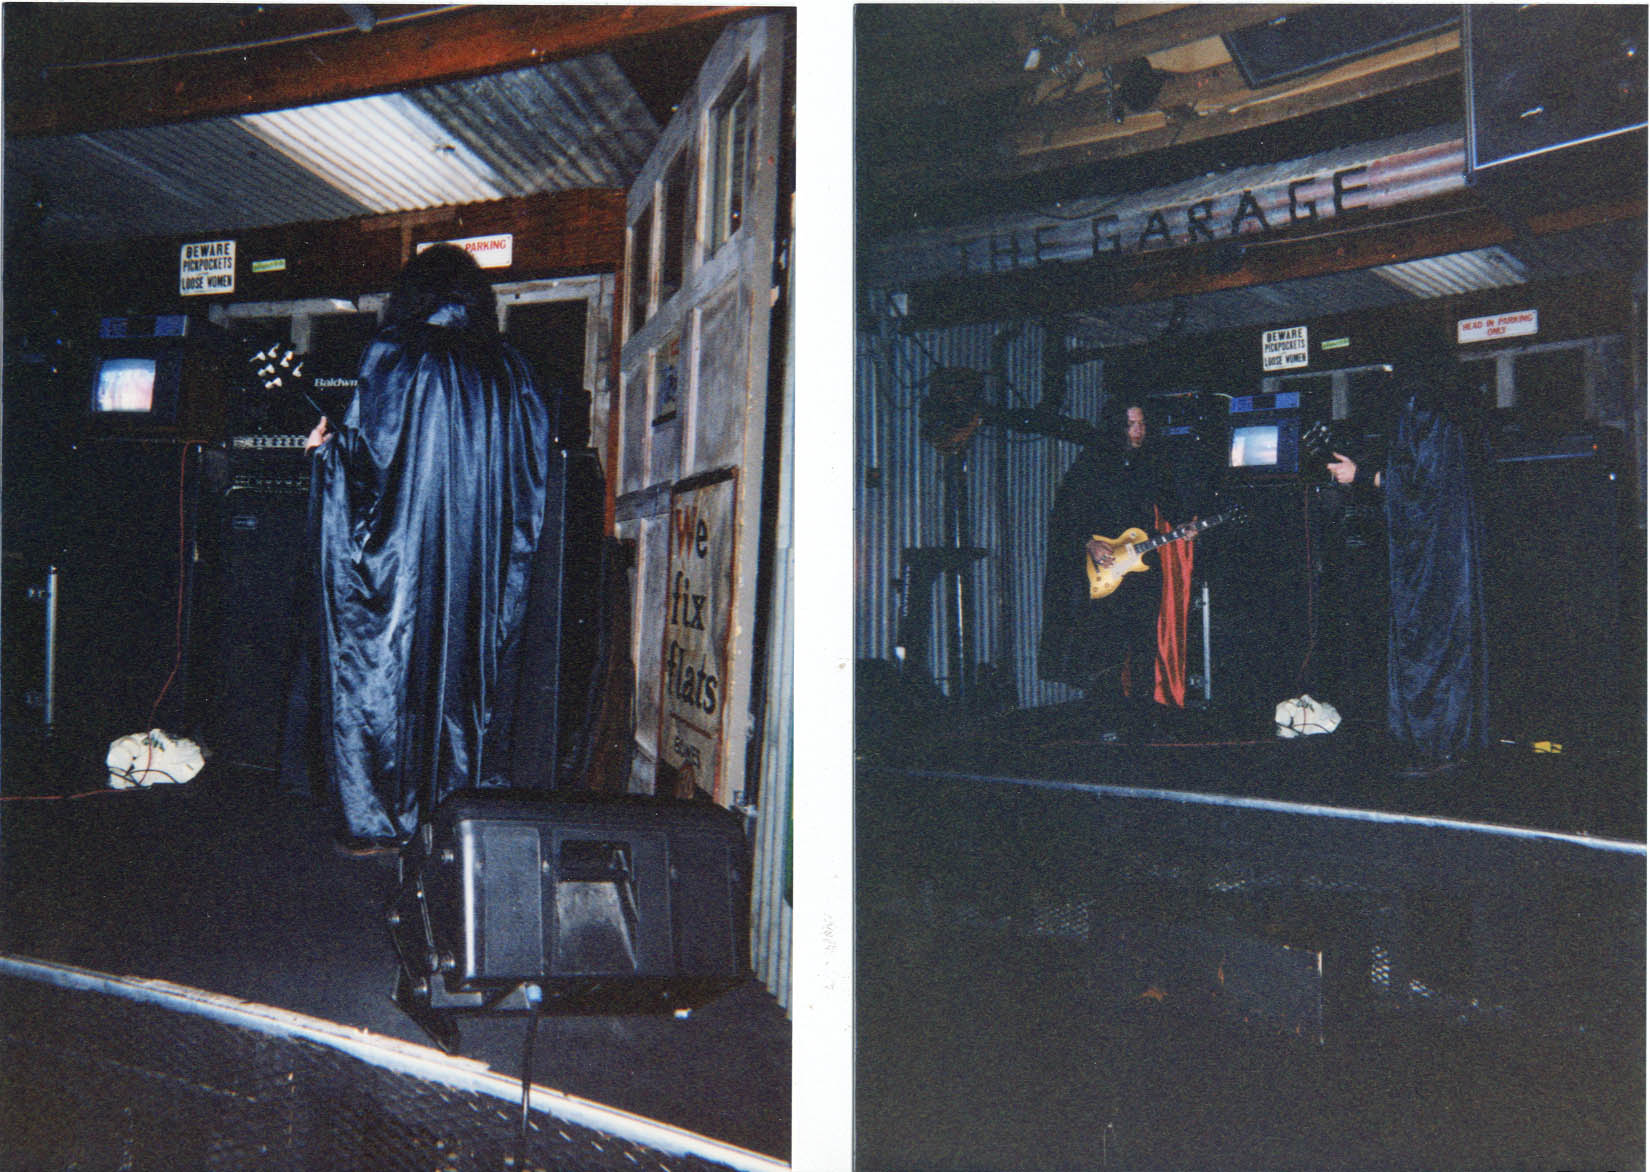 Photo of SUNN O)))s first show (Spring 1998) & TEETH OF LIONS RULE THE DIVINE session New Years Day 2002